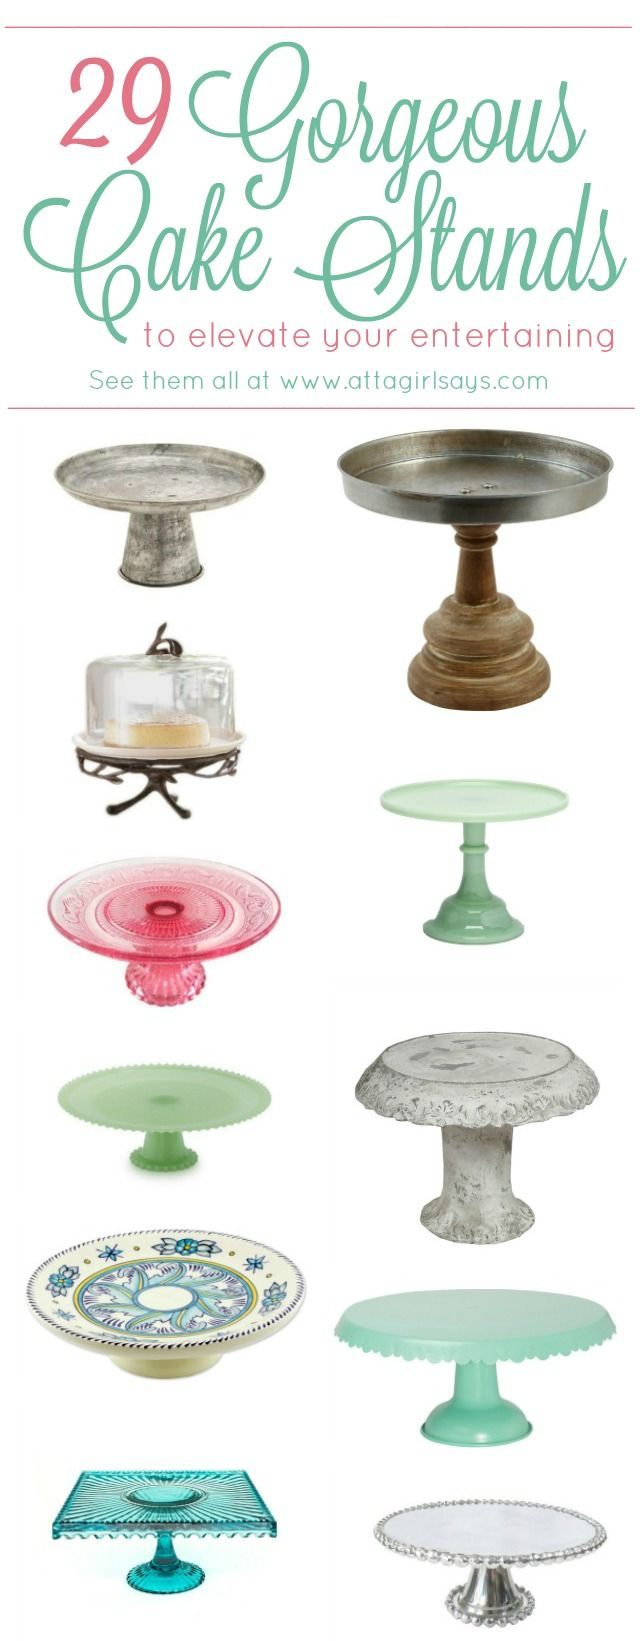 Atta Girl Says | 29 Gorgeous Cake Stands To Elevate Your Entertaining | http://www.attagirlsays.com